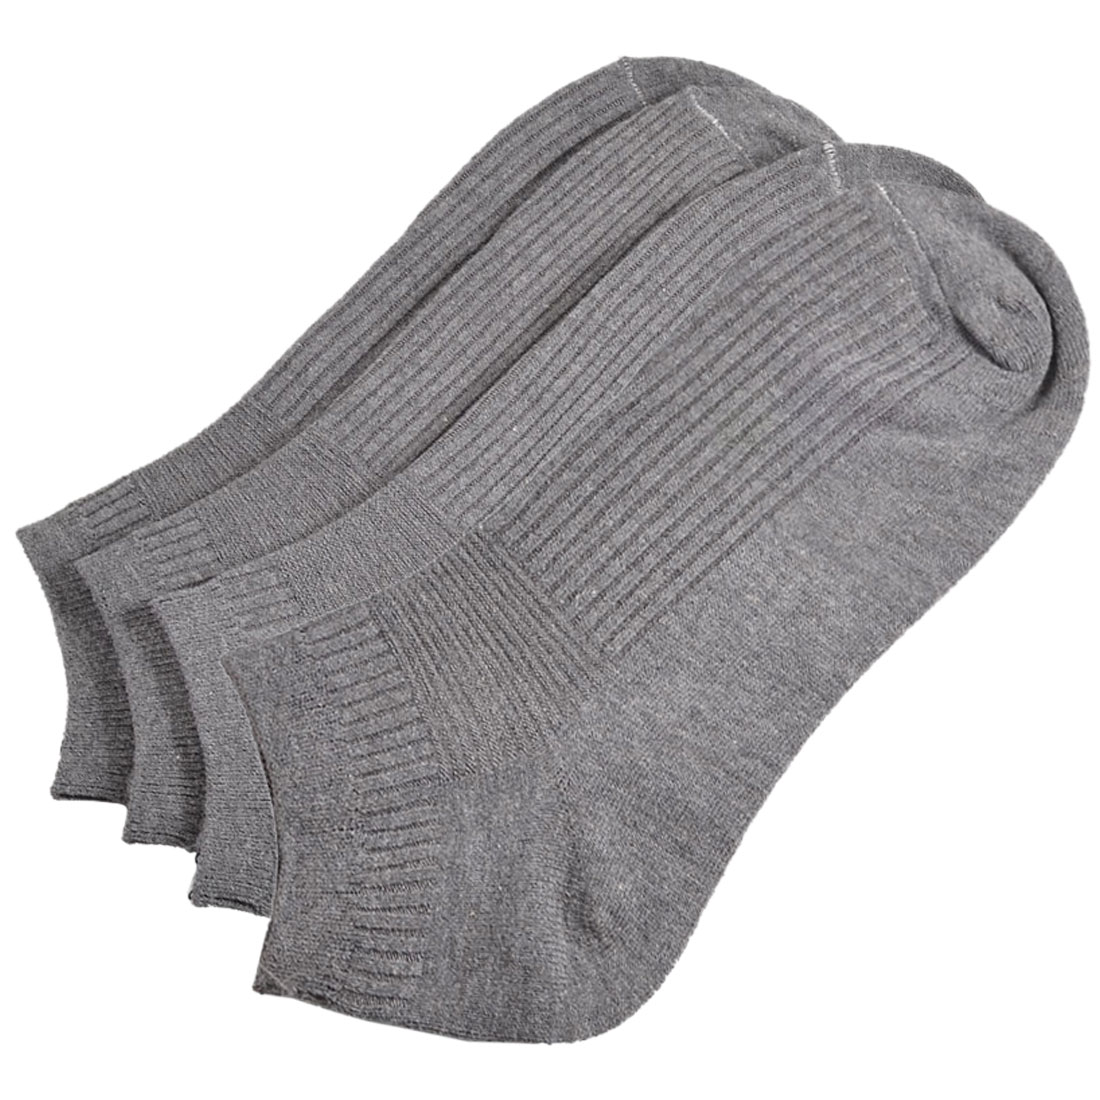 Mens Gray Solid Color Short Low Cut Running Casual Socks 2 Pairs